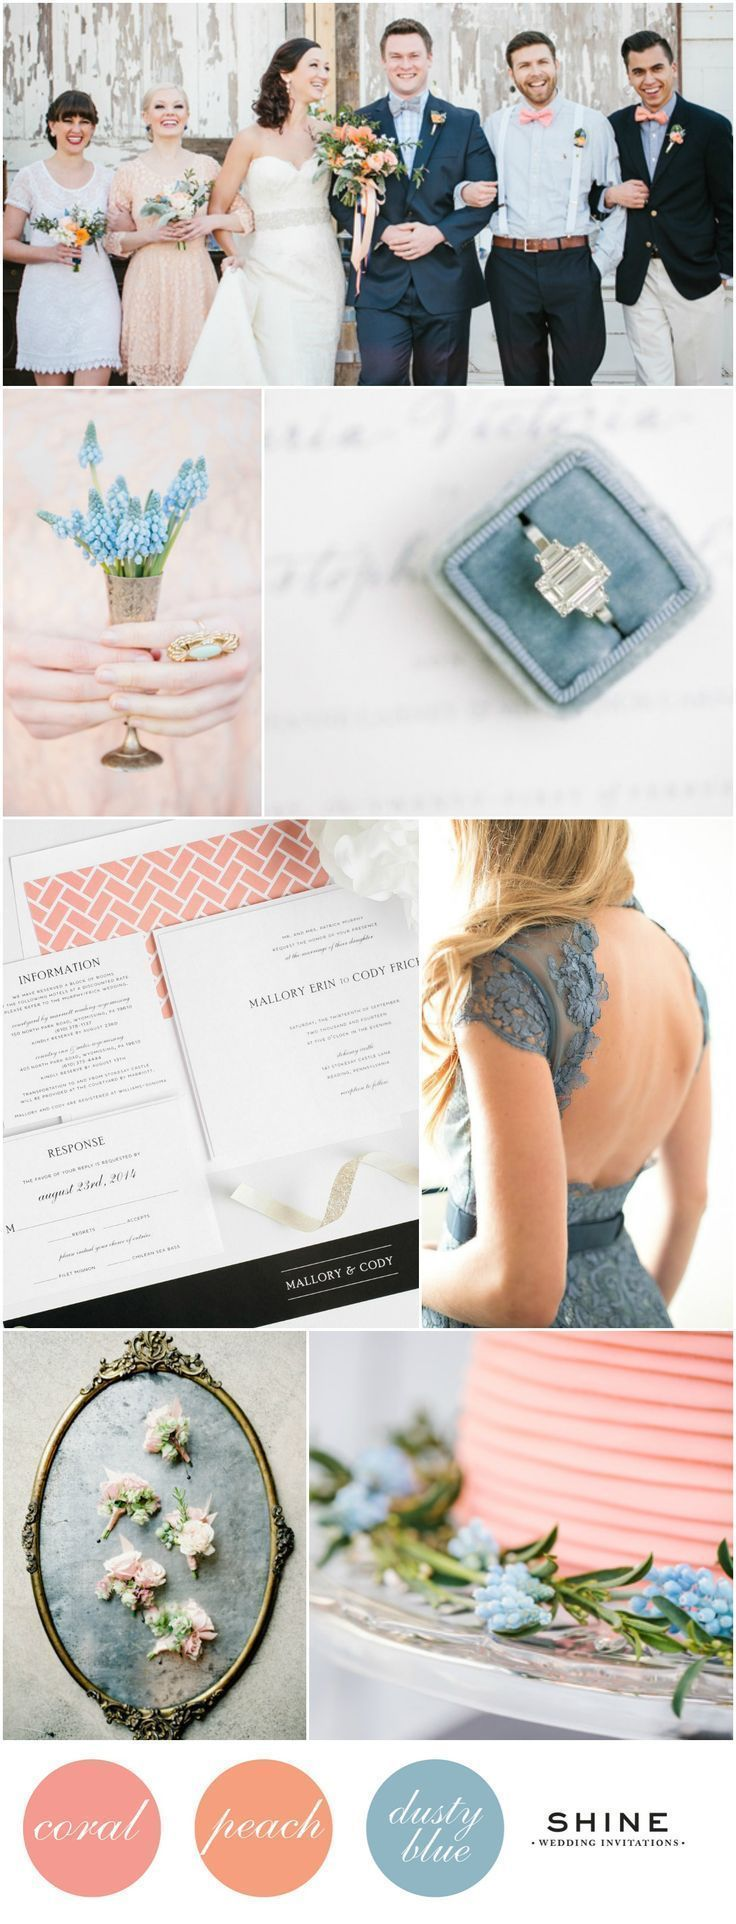 115 best Blues, Coral, Blush and Champagne Wedding Inspiration ...